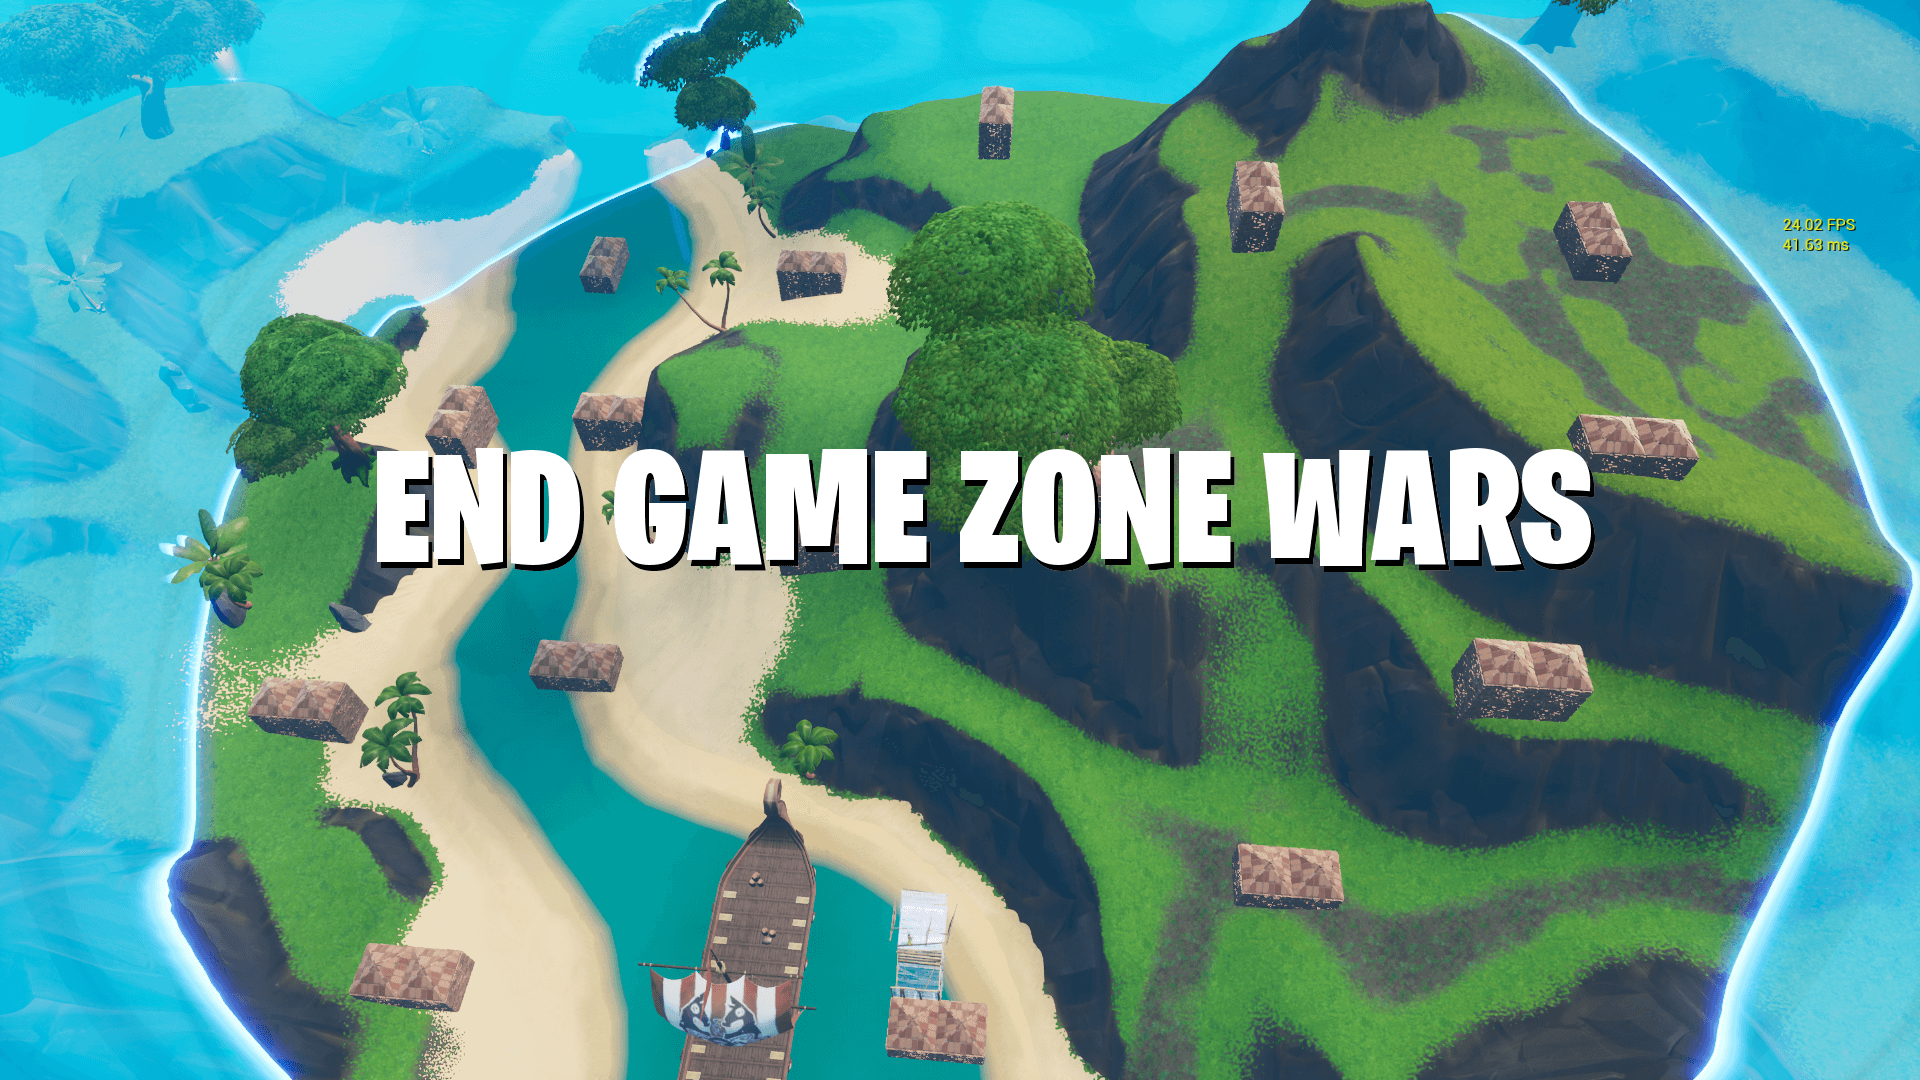 END GAME ZONE WARS